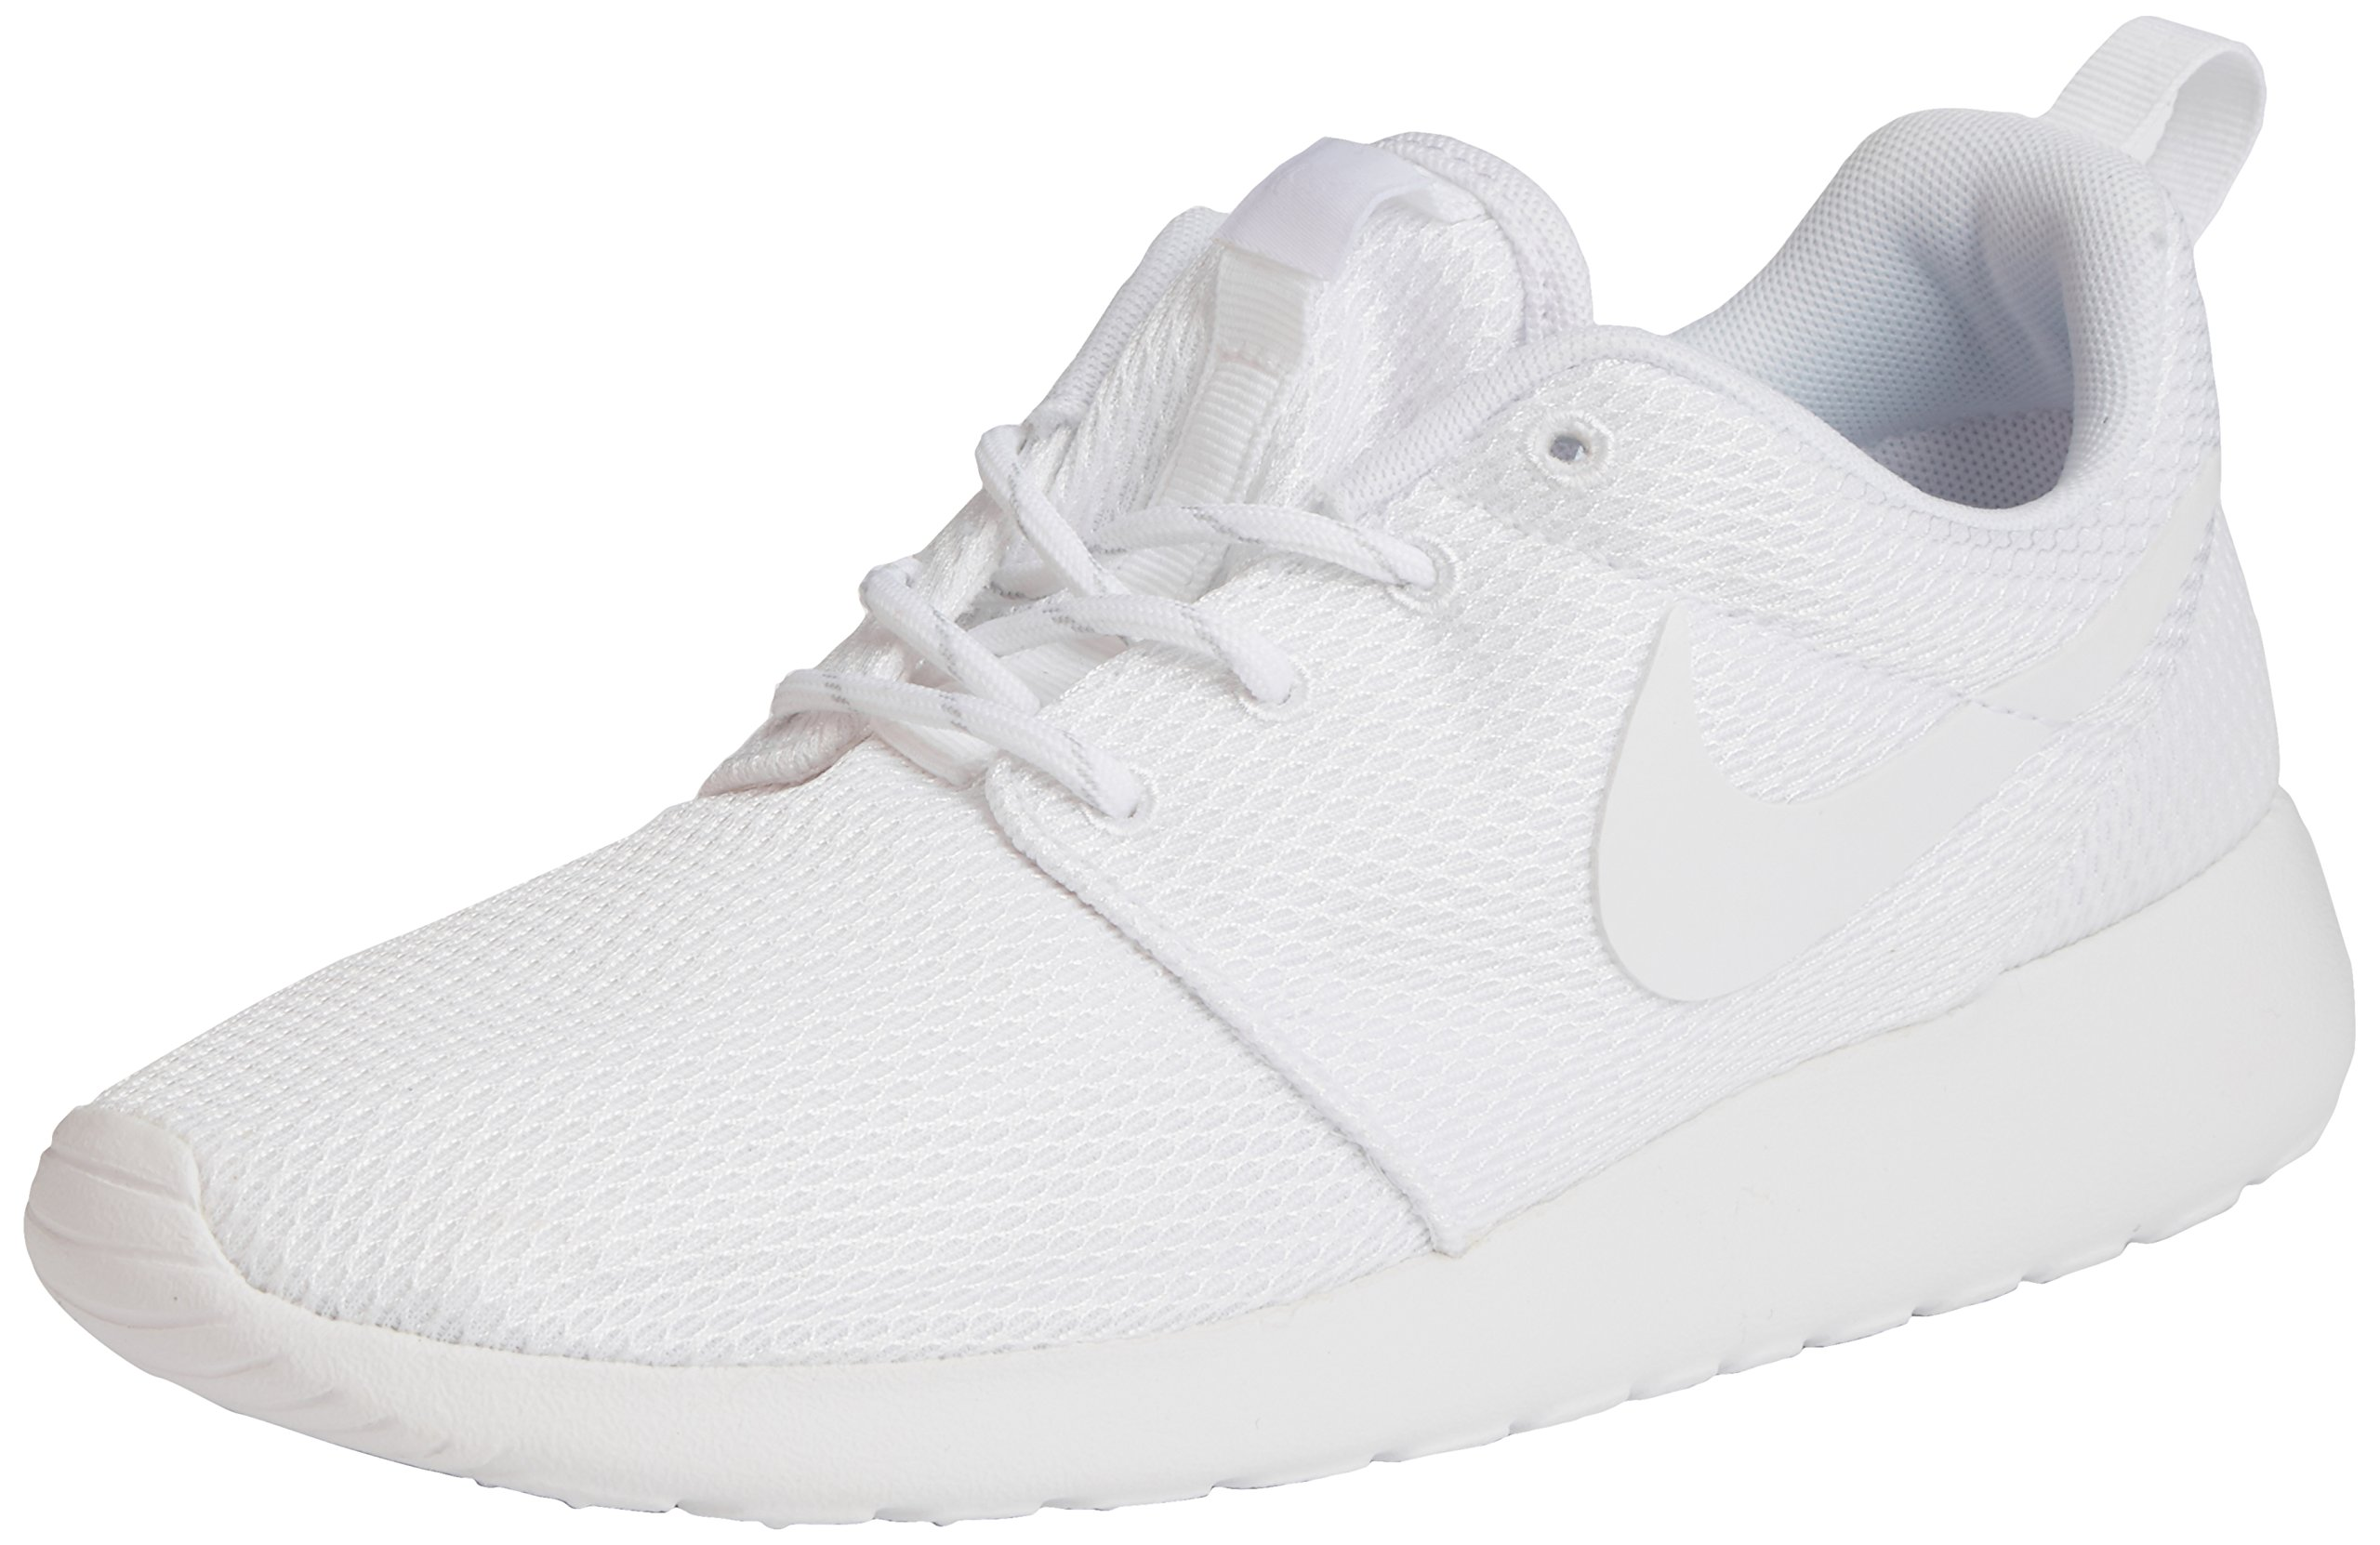 Nike Women's Roshe One Premium Running Shoe, MTLC TawnyParticle Beige (US 6)